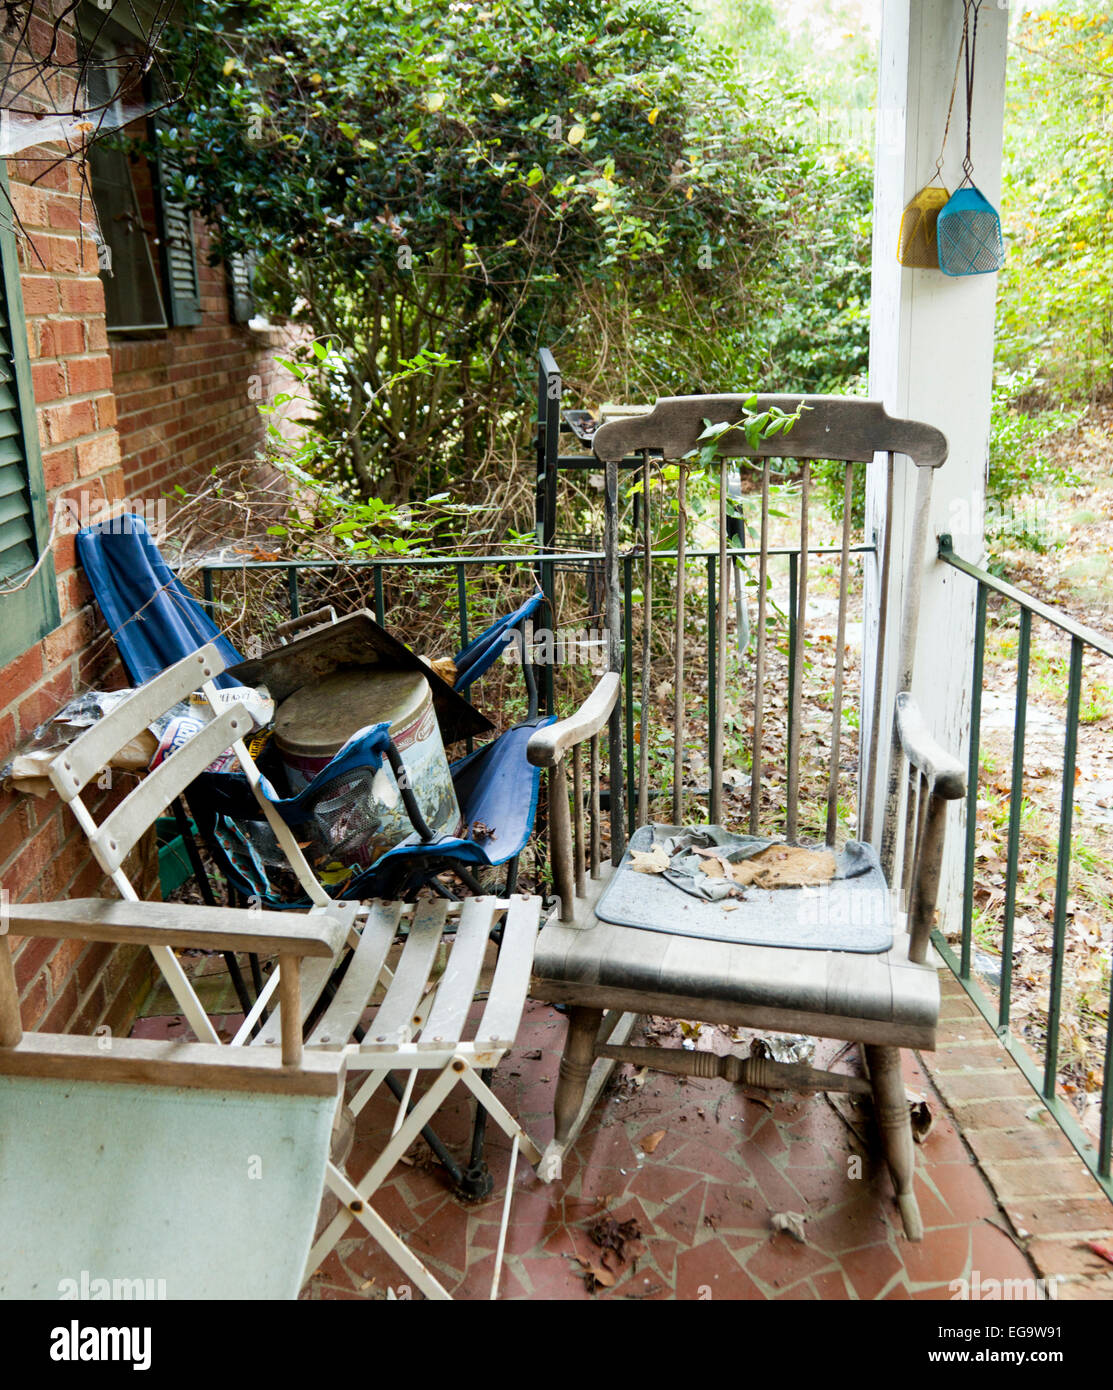 Rocking Chair And Other Chairs On A Porch In The Backwoods Of South Carolina